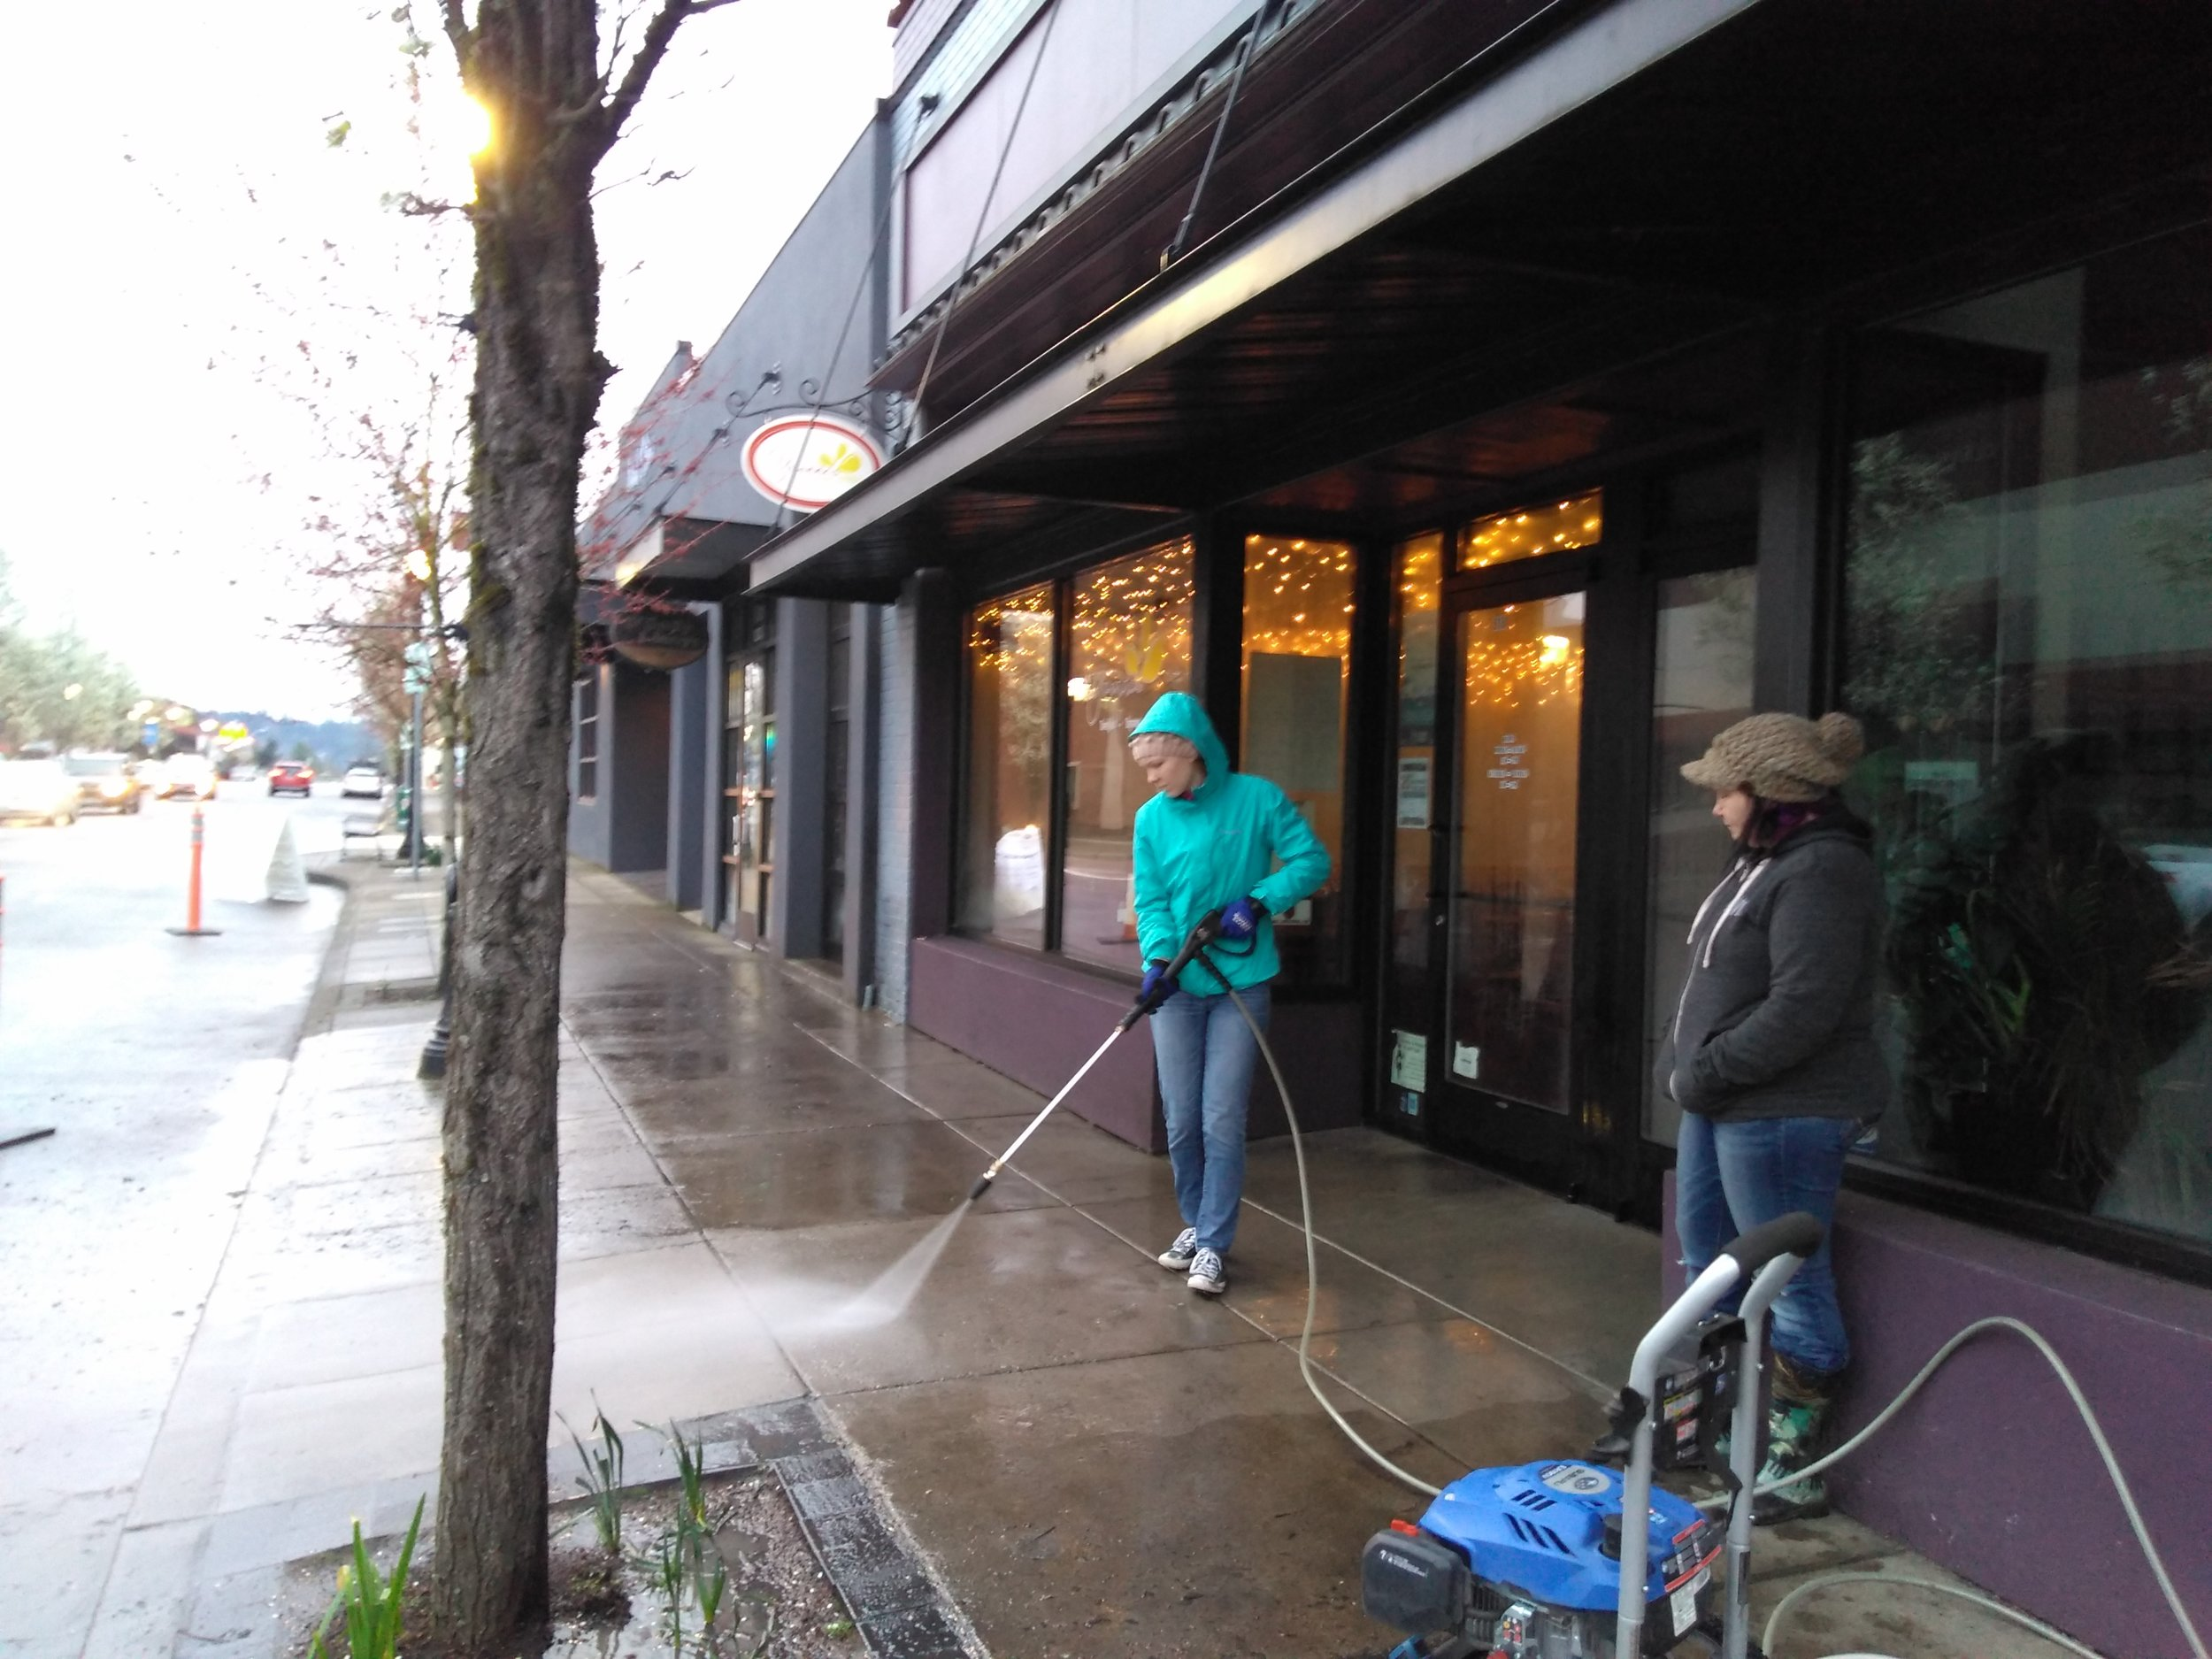 Jane and Liberty fire up the power washers on Main Street